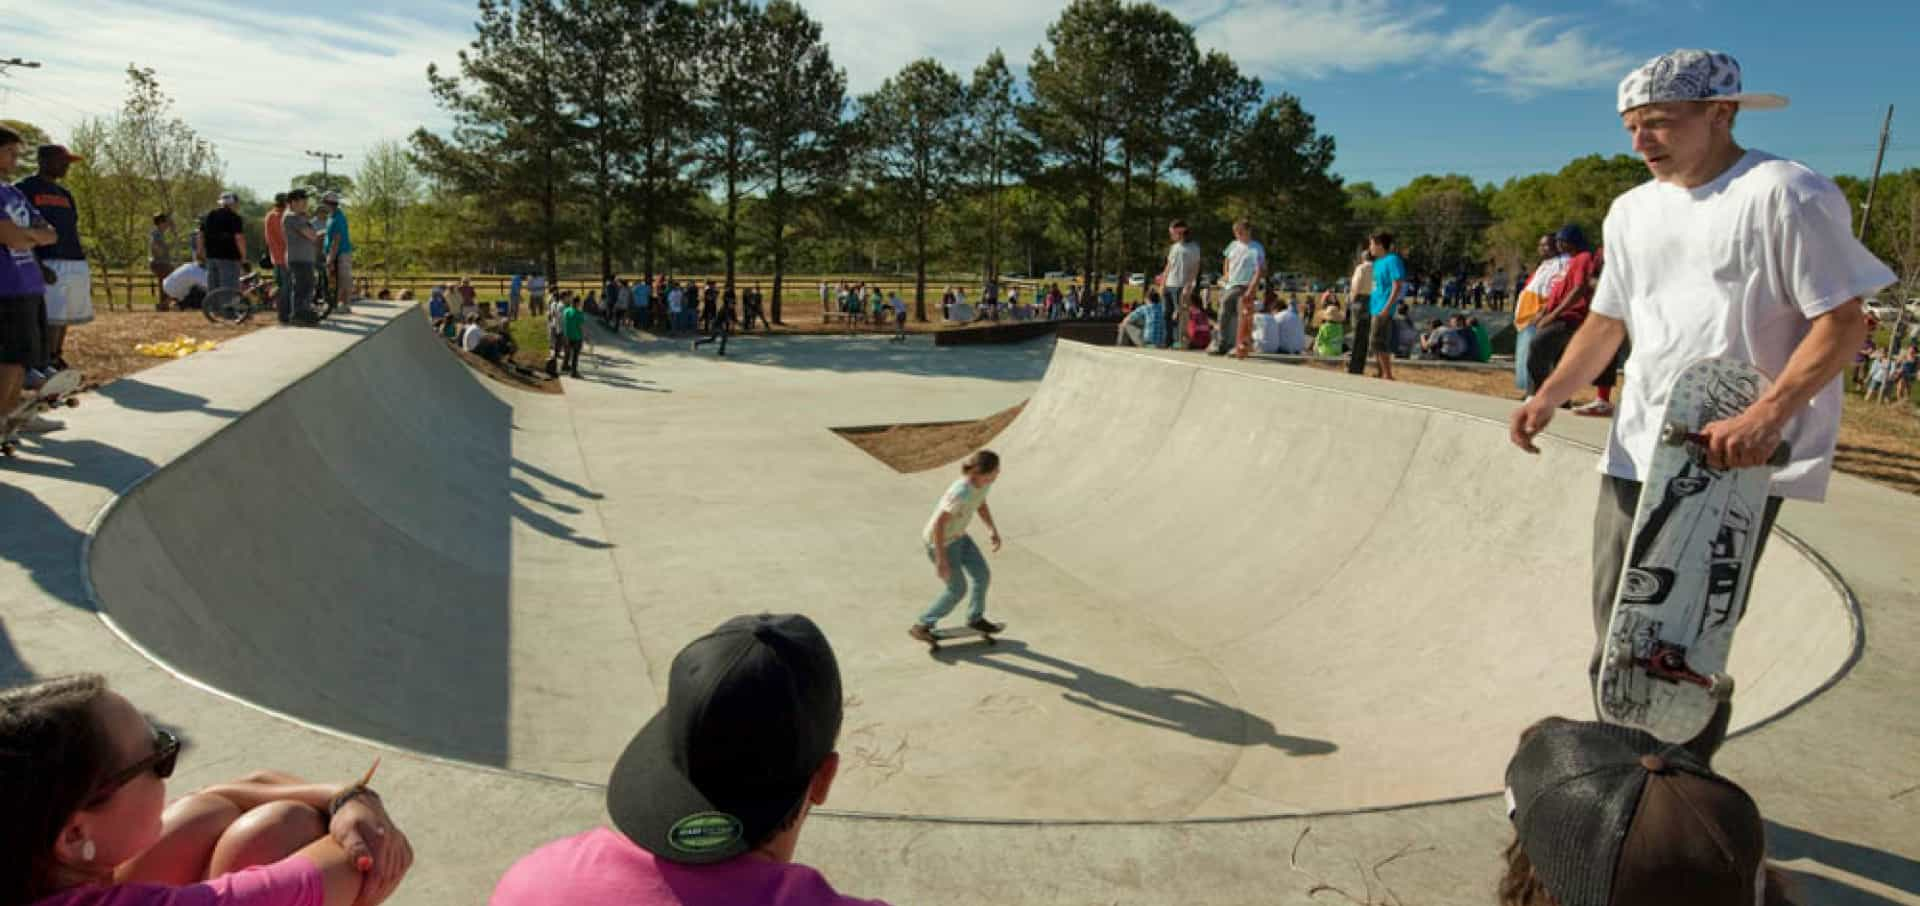 Fullwidth image of skaters at the park